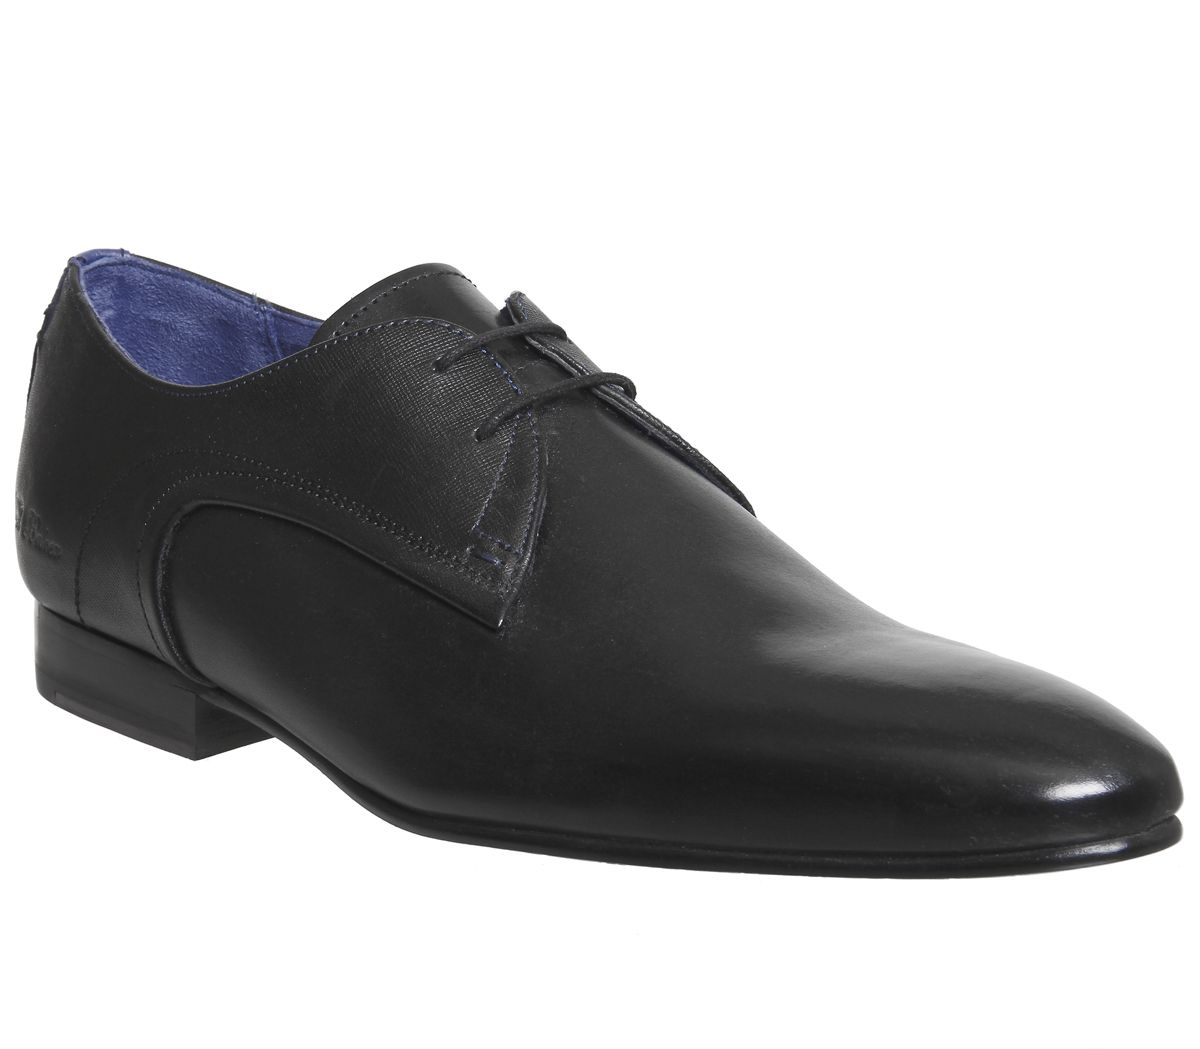 c7c4a3510 Ted Baker Peair Lace Up Black Leather - Smart